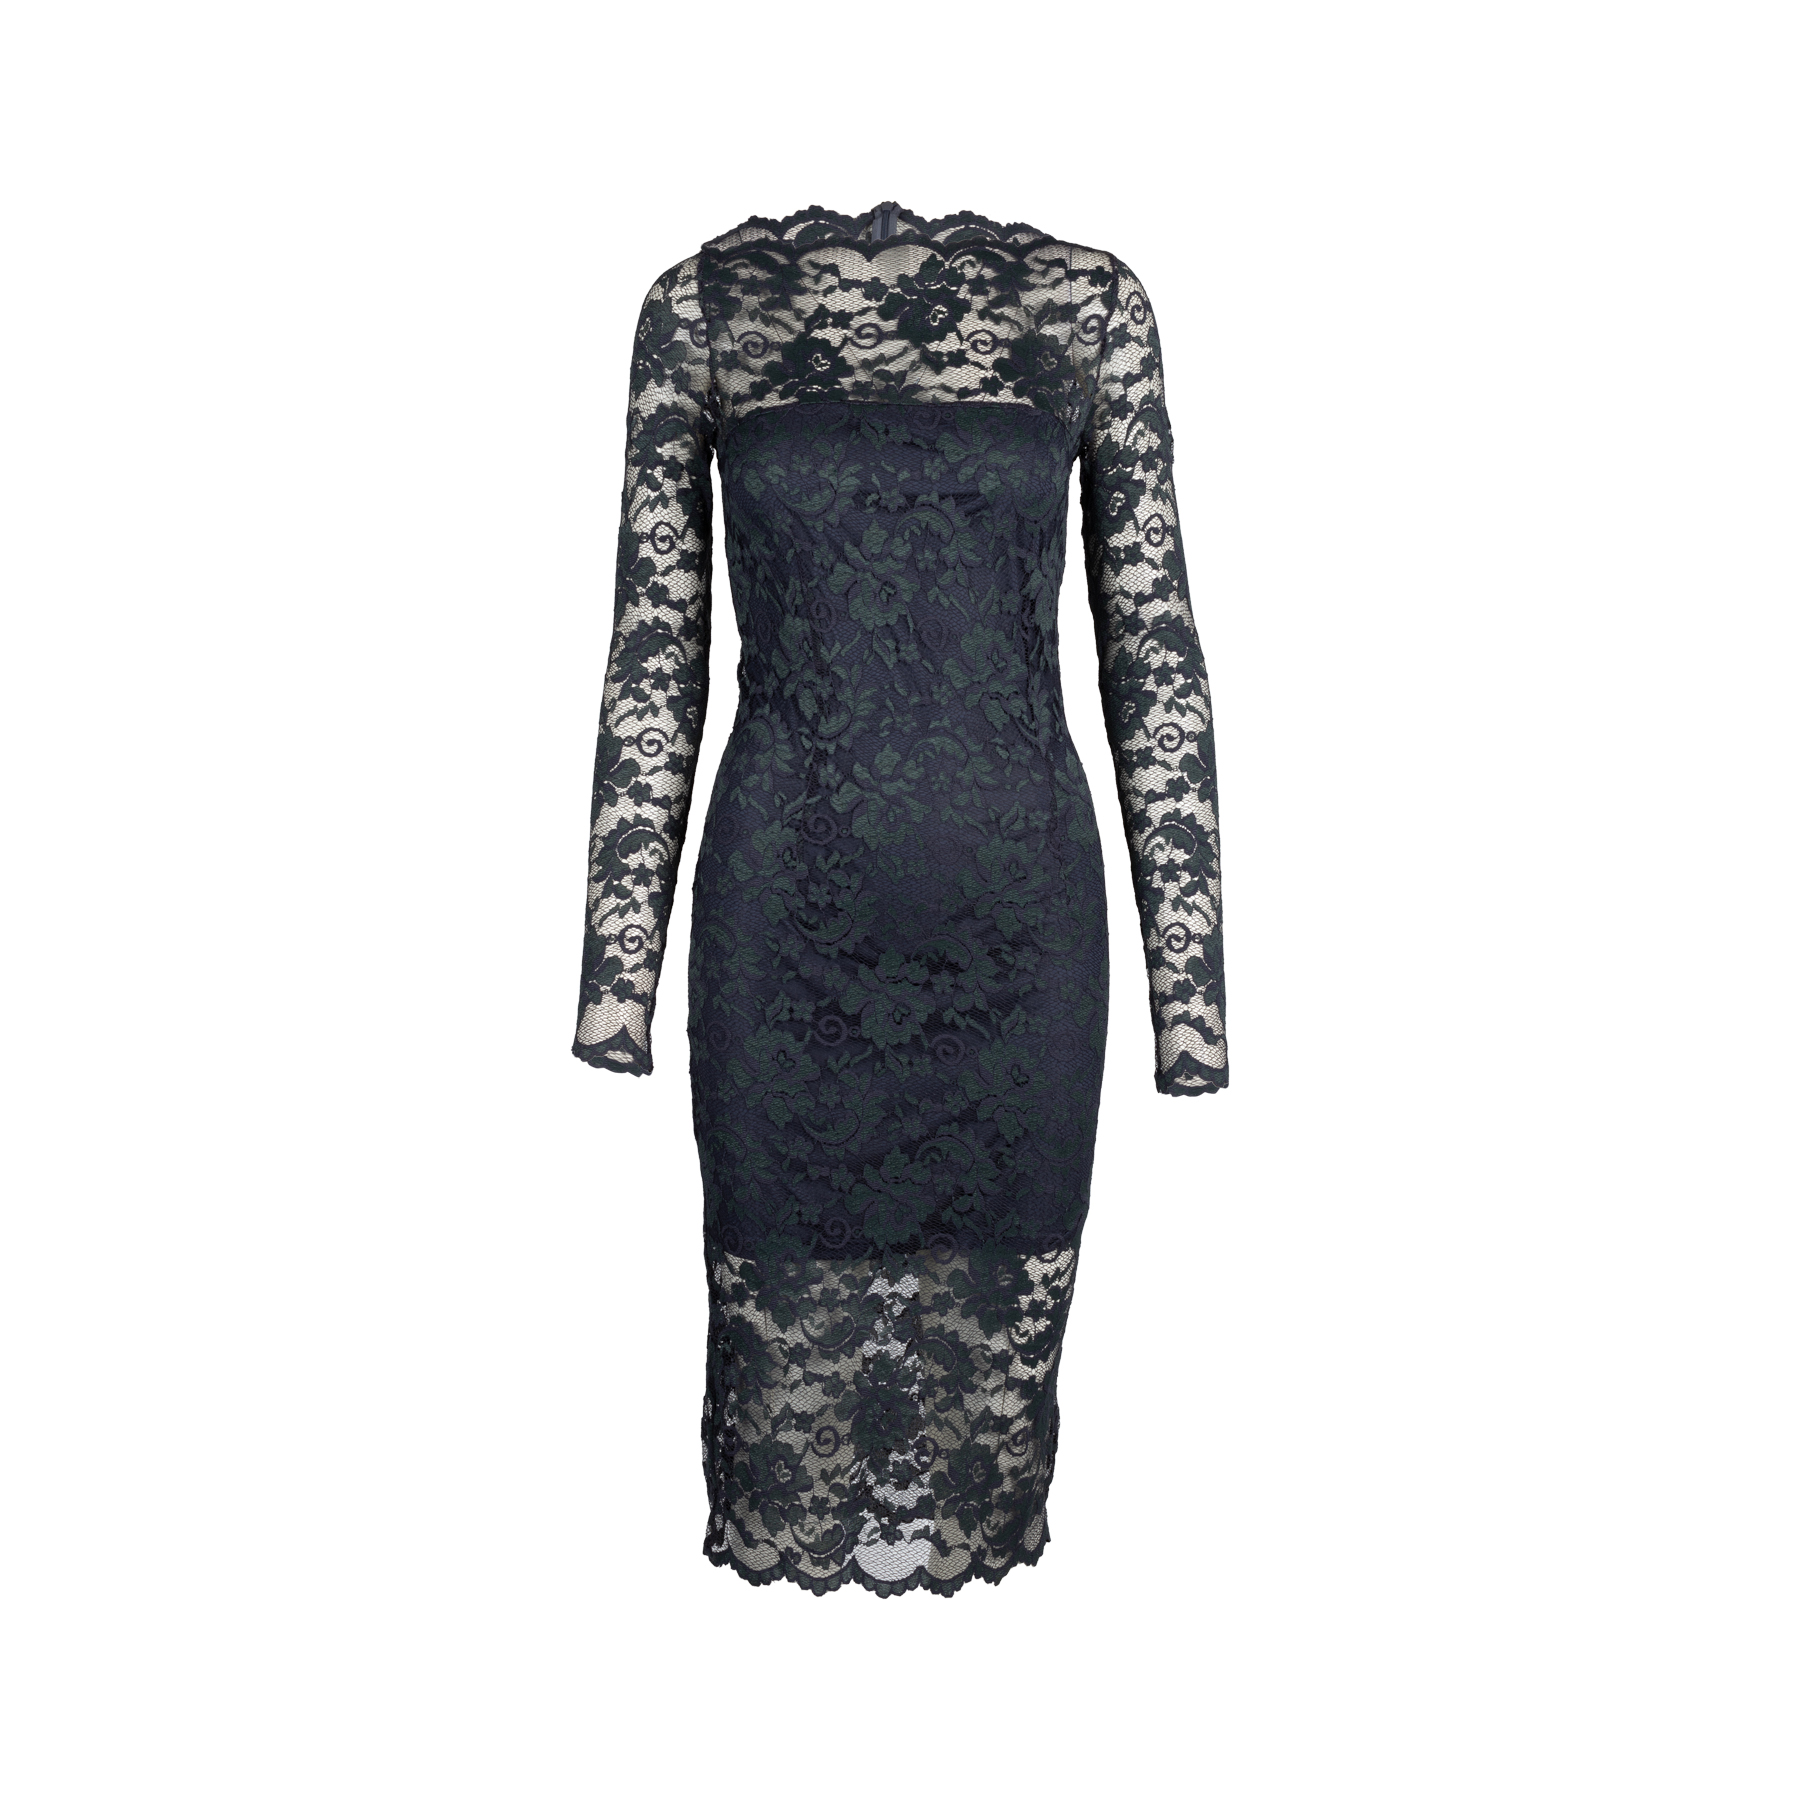 d167a058 Authentic Second Hand Ganni Flynn Lace Dress (PSS-424-00111) | THE FIFTH  COLLECTION